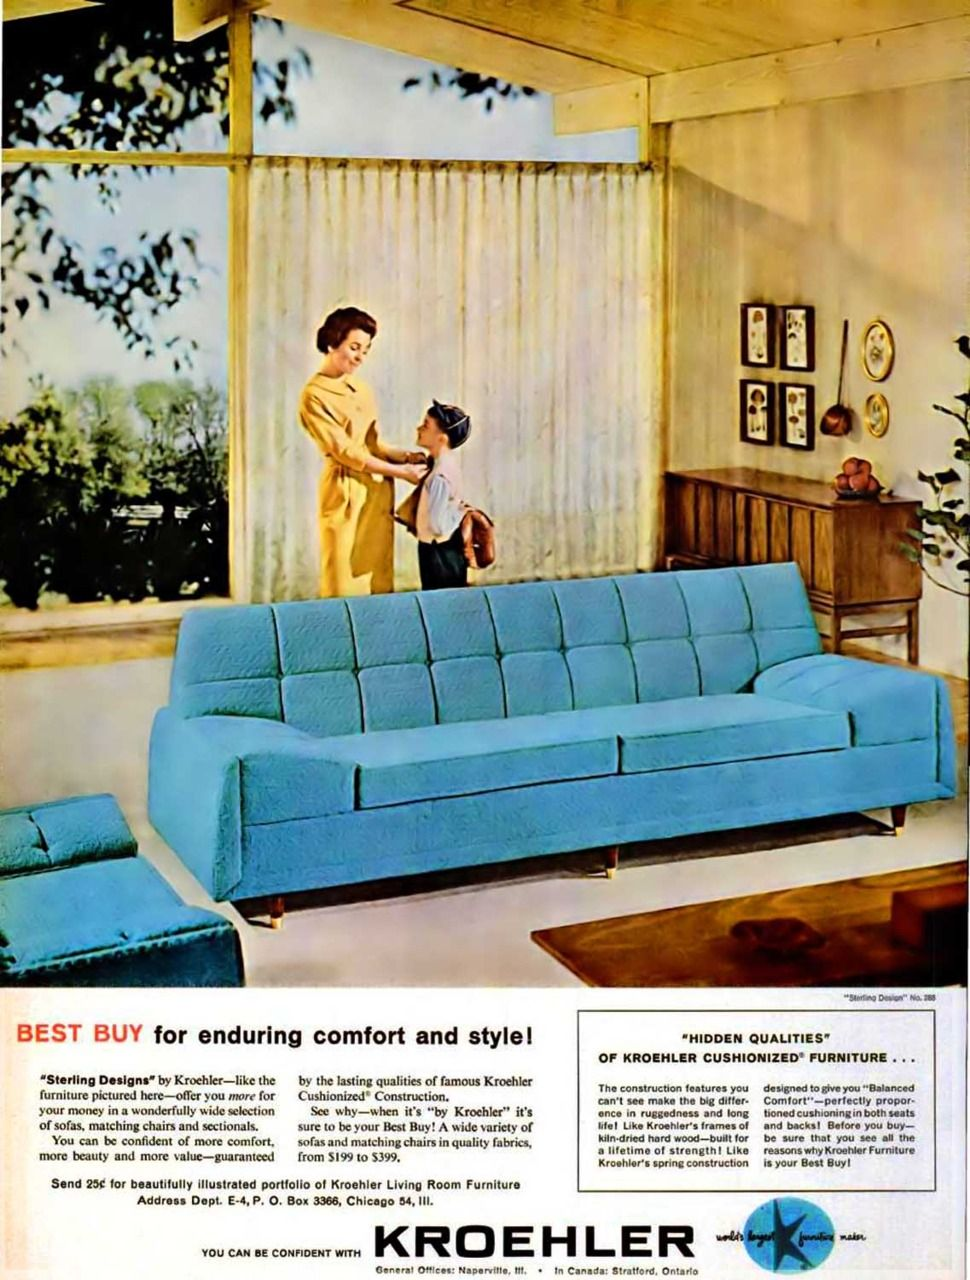 Hollyhocksandtulips Furniture Advertisement 1960 I Love Houses Like These With Big Window Walls 1960 Furniture Living Room Pictures Bedroom Design